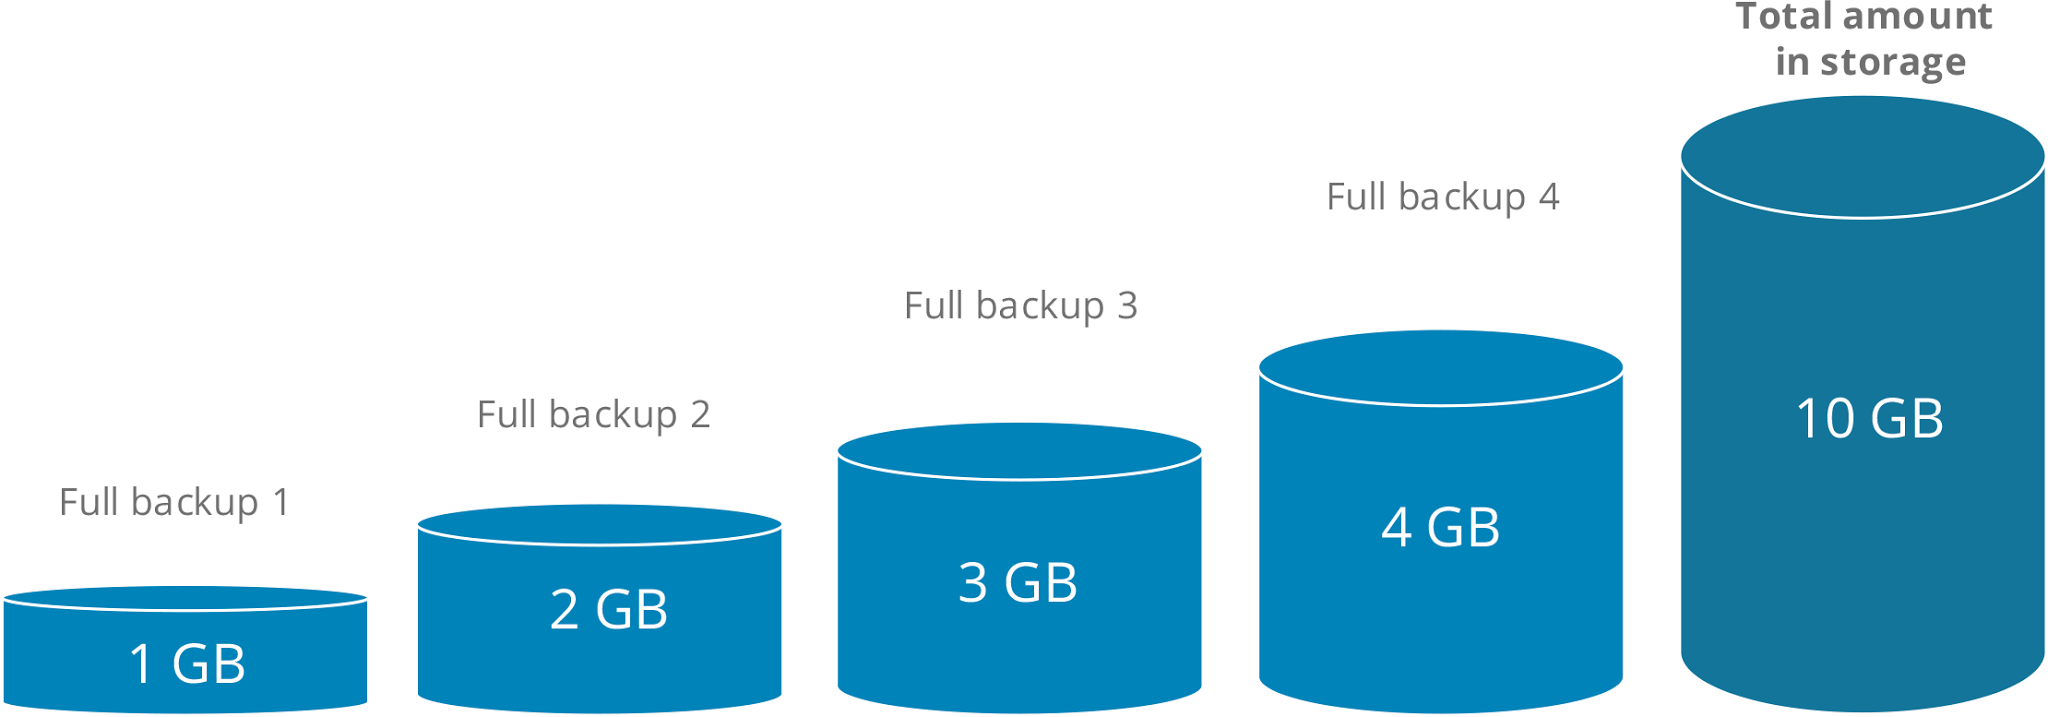 Dynamics CRM Full backup